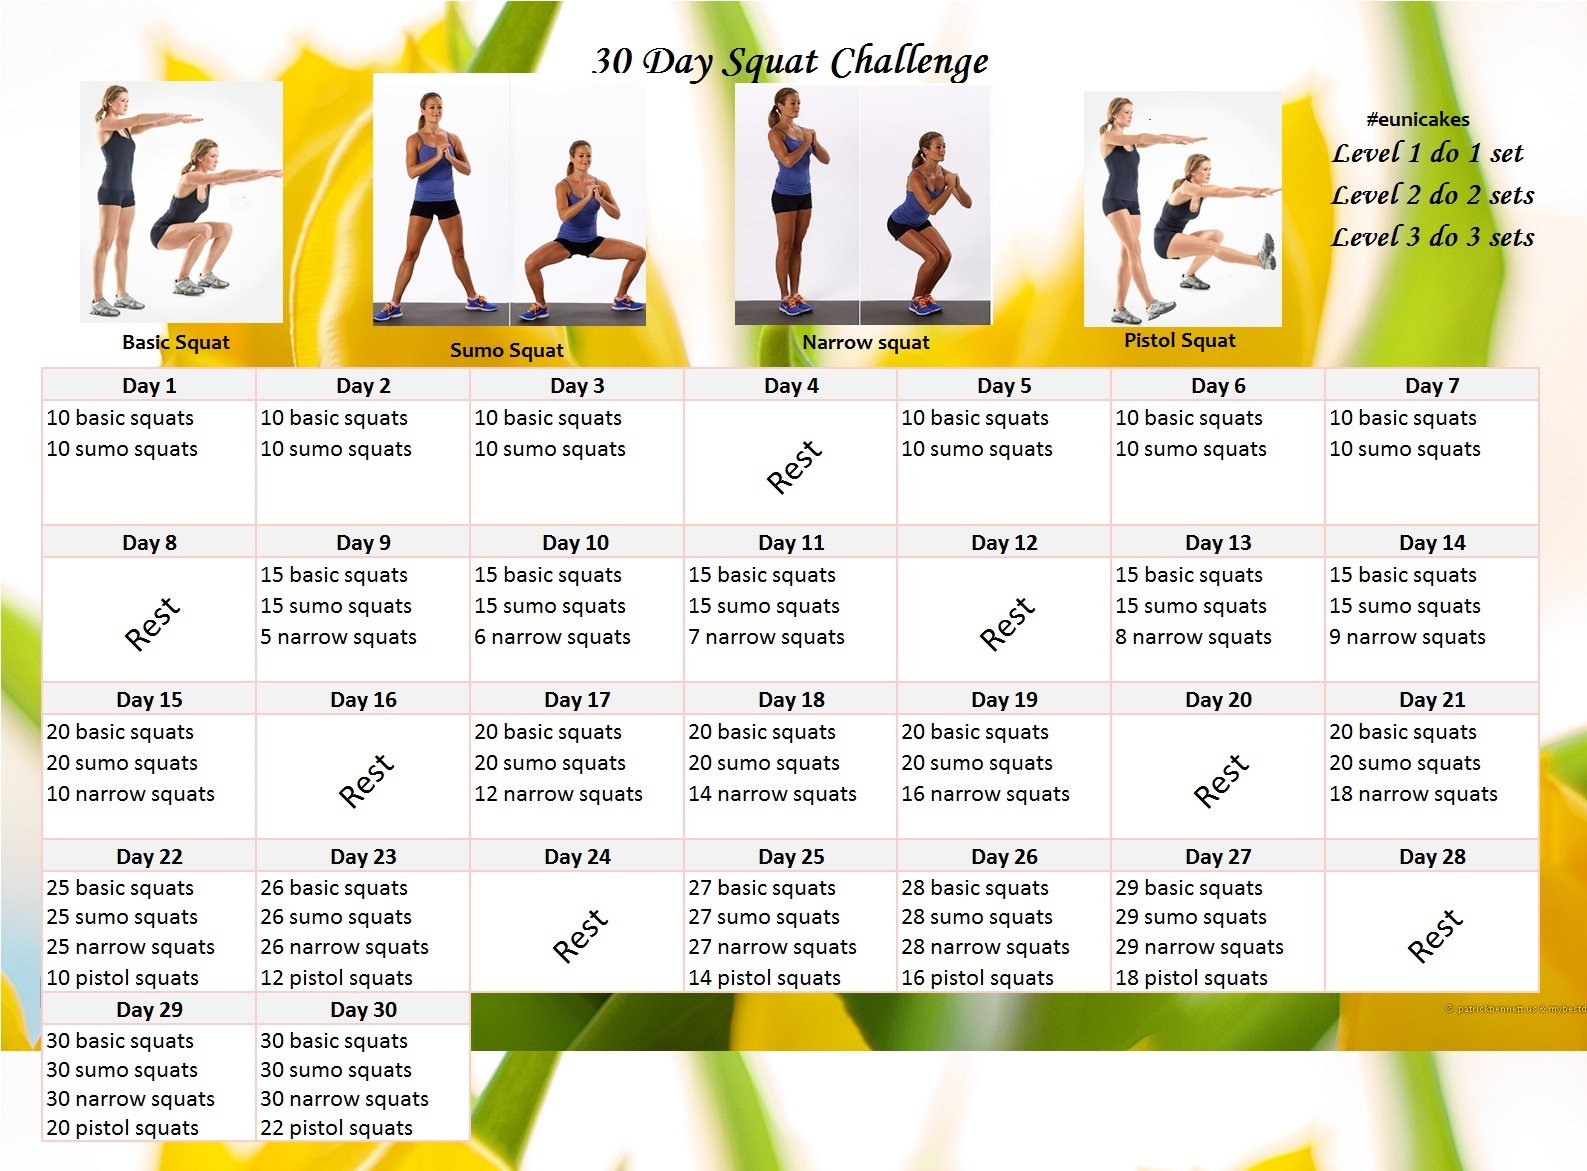 Fitness Challenge: 30 Day Squat Calendar Challenge | Eunicakes Intended For 30 Day Squat Calender